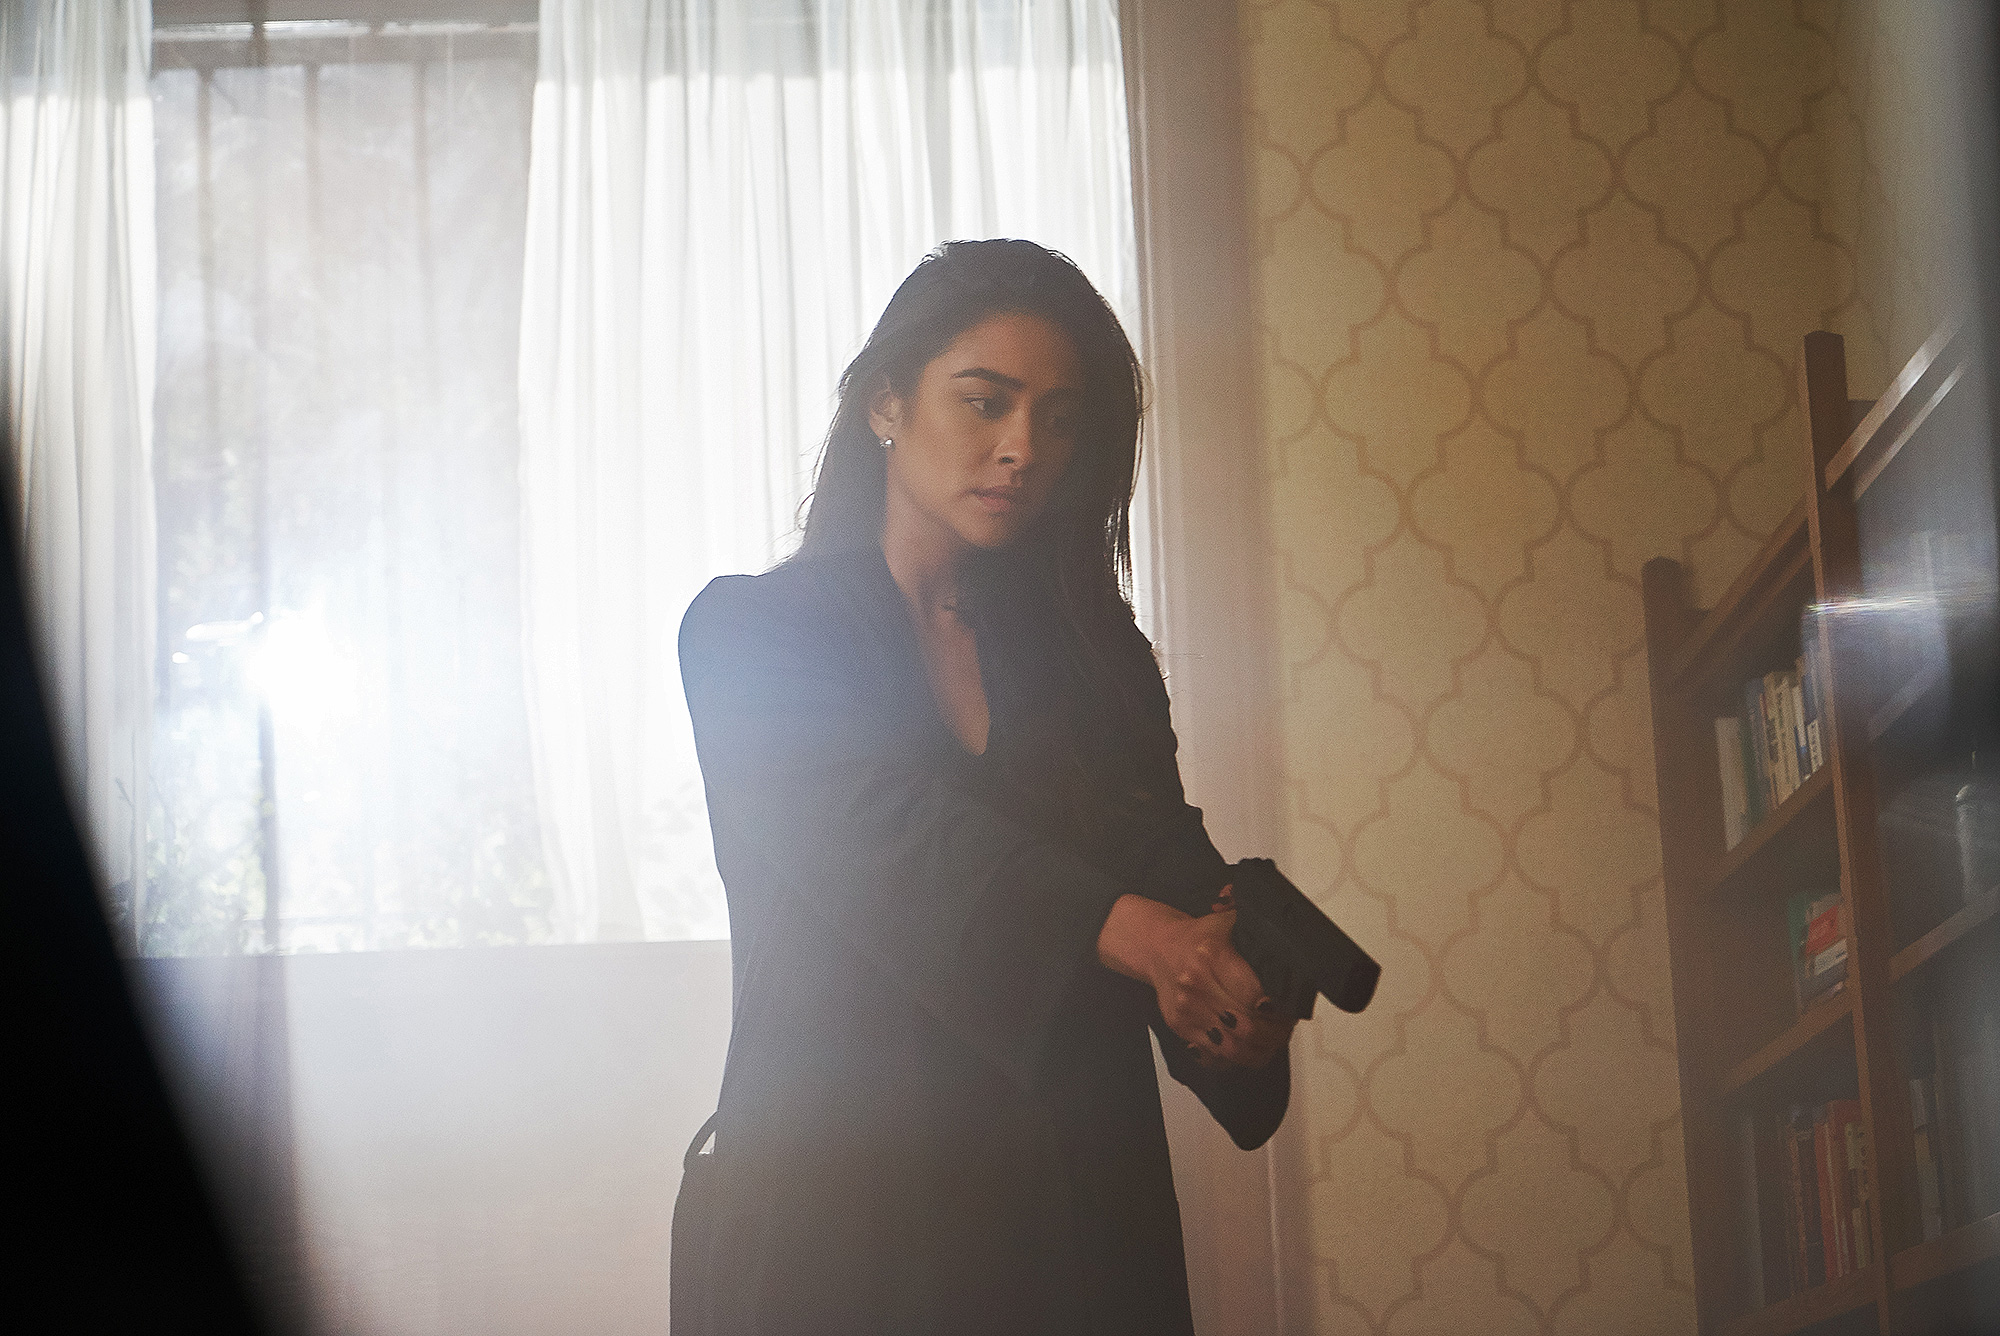 Shay Mitchell, You, Lifetime - Shay Mitchell in 'You' on Lifetime